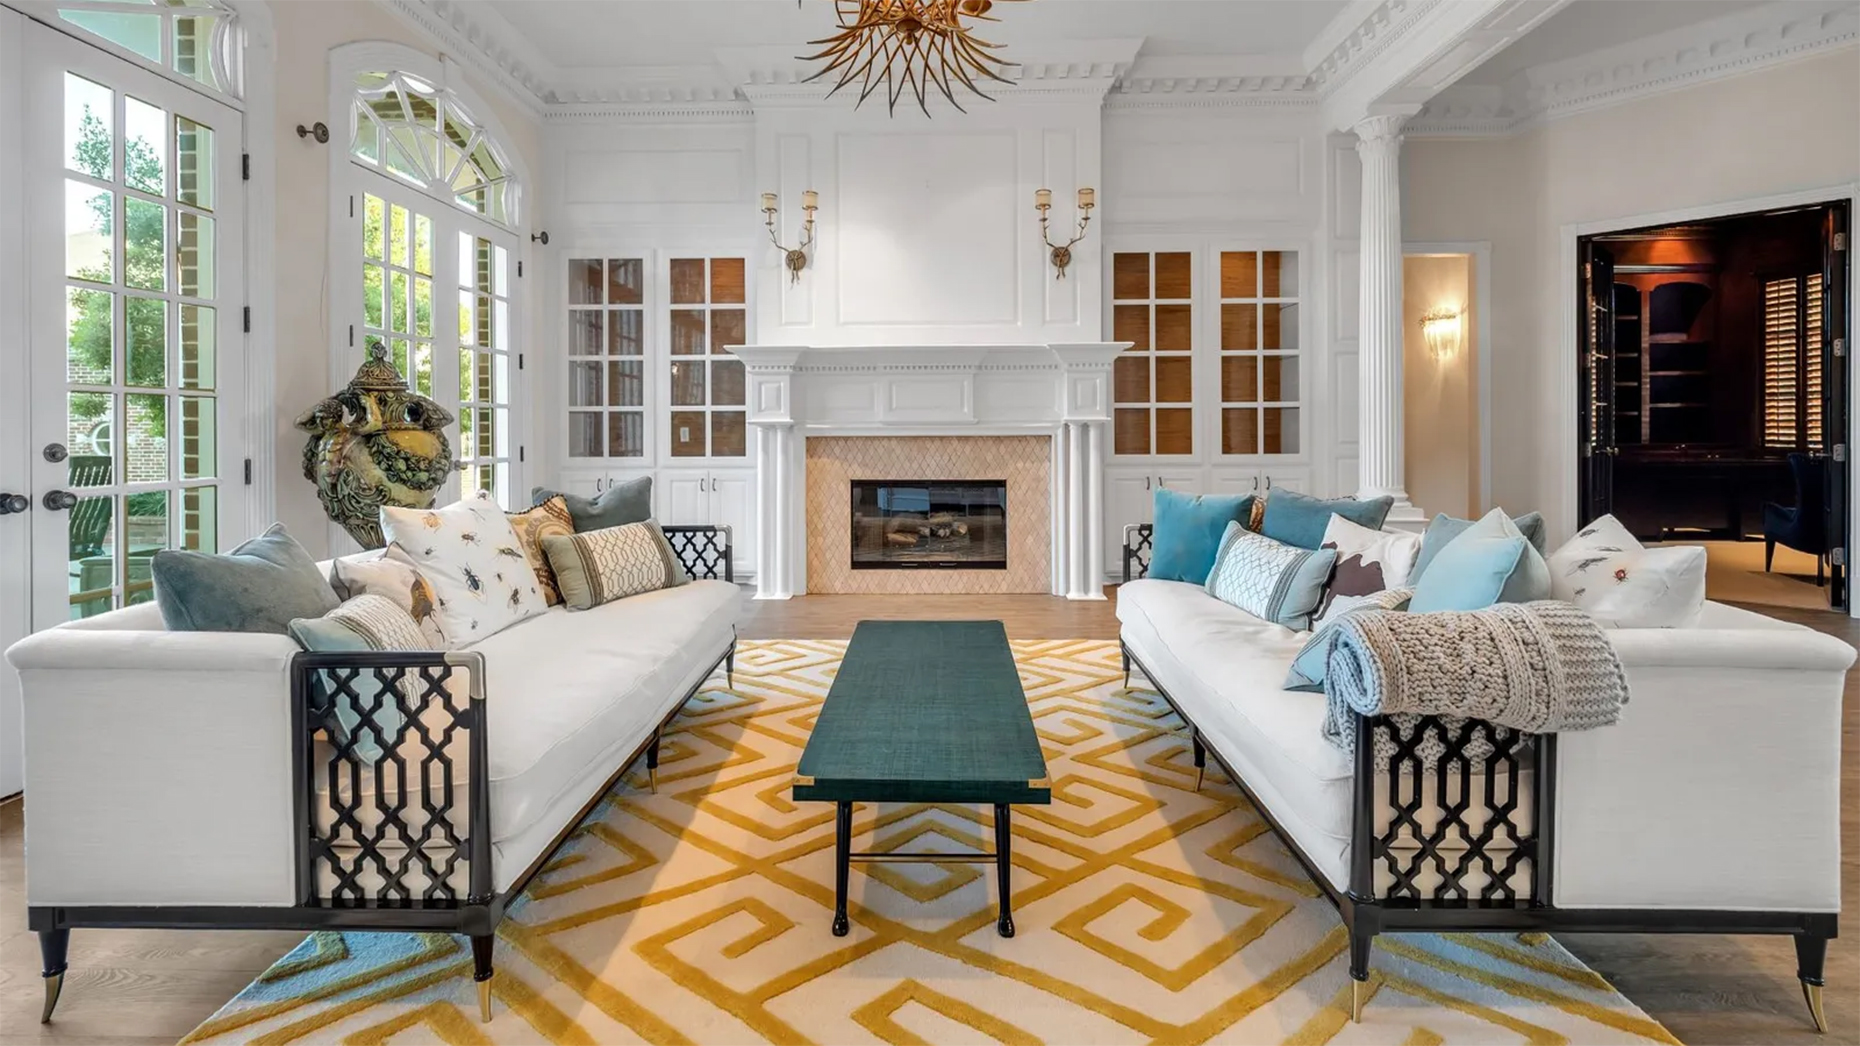 Furnished or unfurnished? 3 agents weigh in